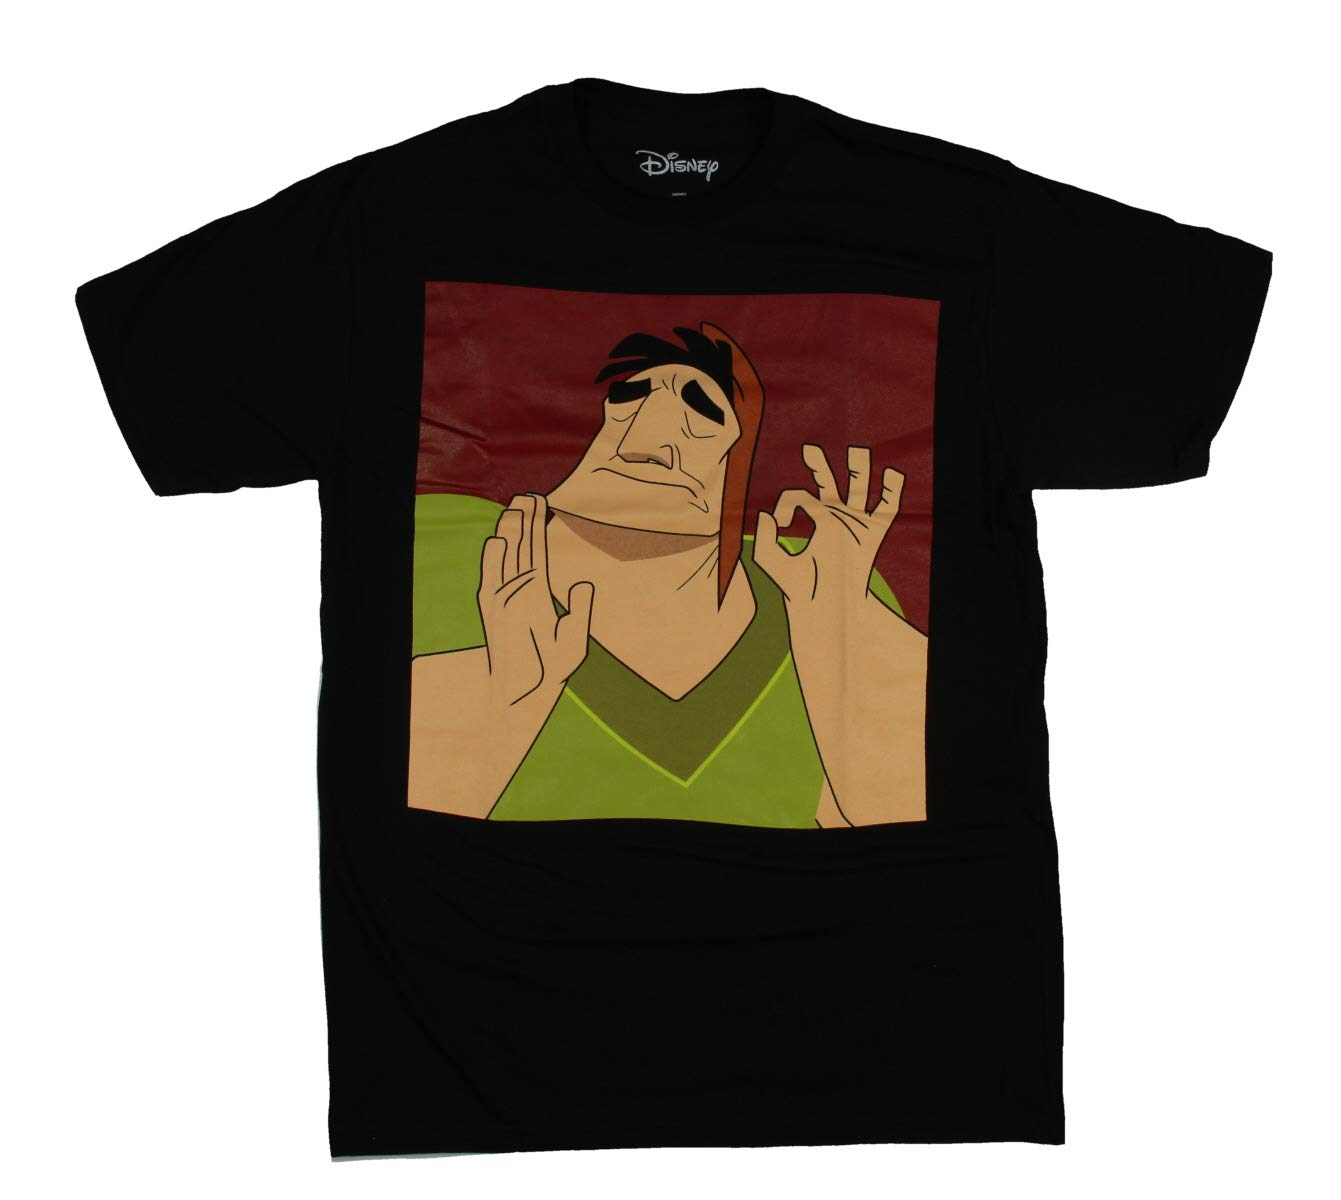 Seven Times Six The Emperors New Groove Peasant Pacha S Tshirt